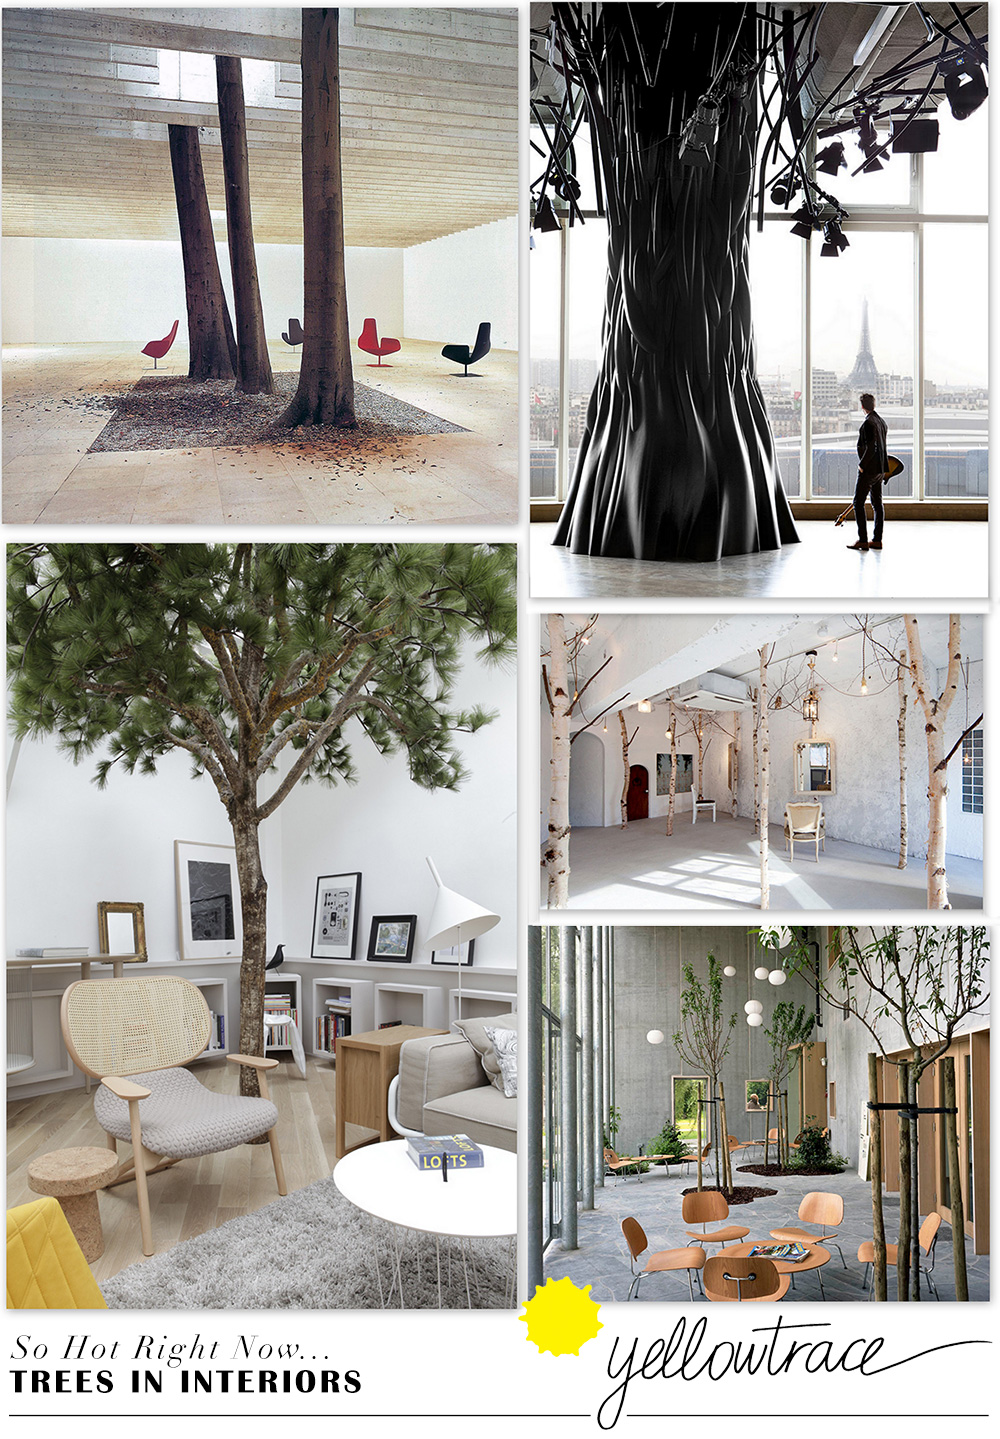 So Hot Right Now Trees In Interior Design Yellowtrace,Home Design Furnishing Patna